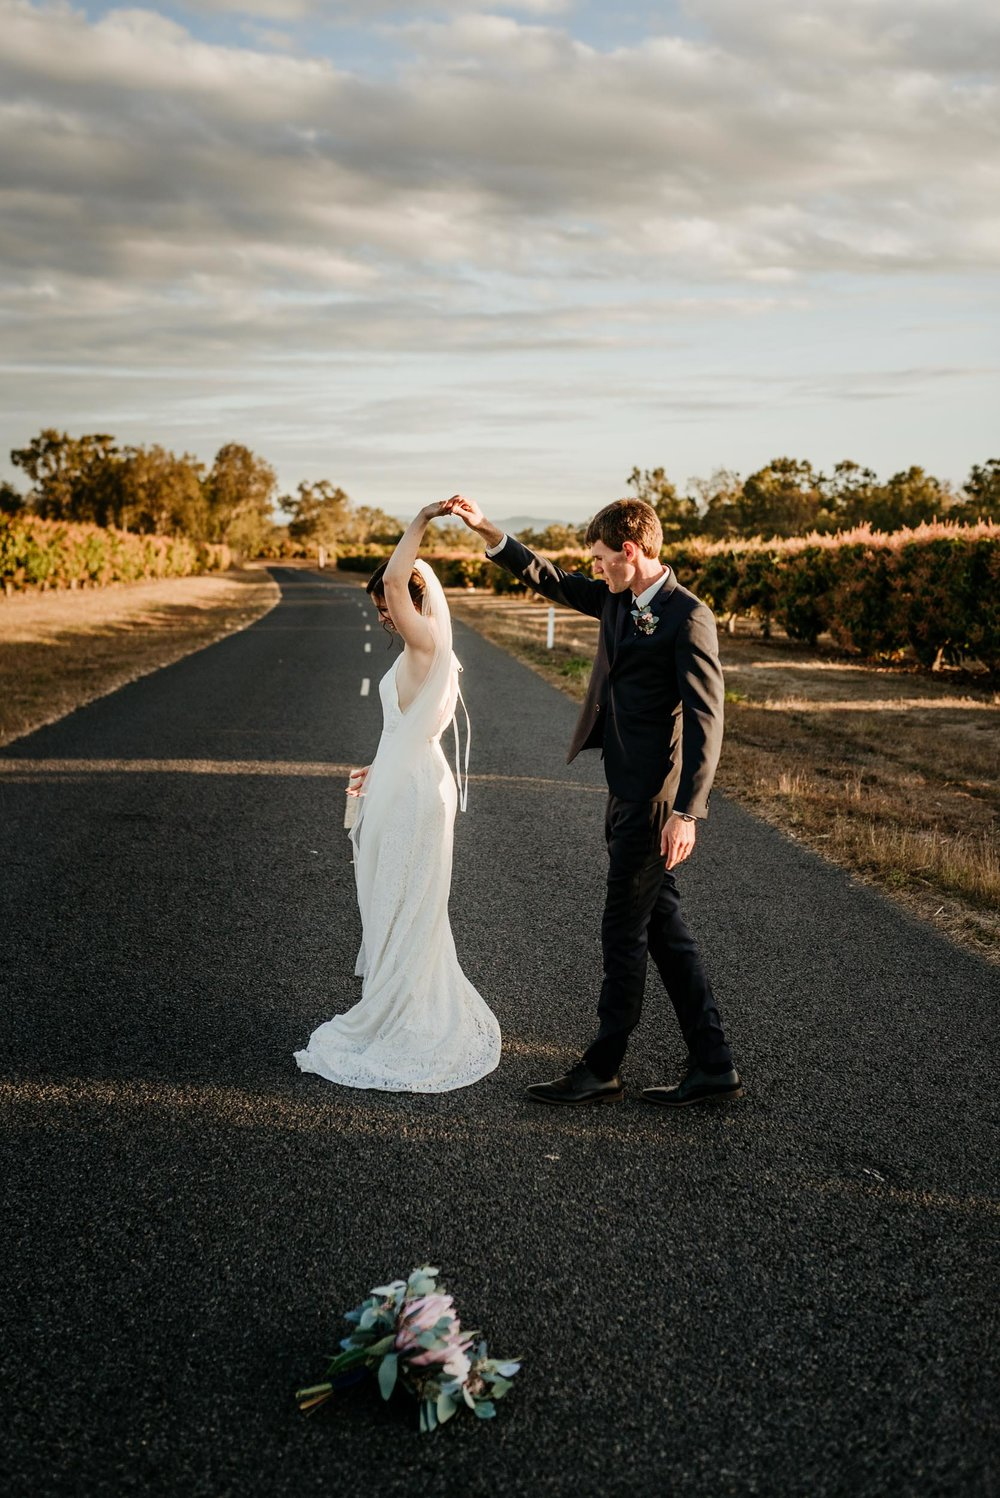 The Raw Photographer - Cairns Wedding Photographer - Atherton Tablelands Venue - Mareeba Photography-53.jpg